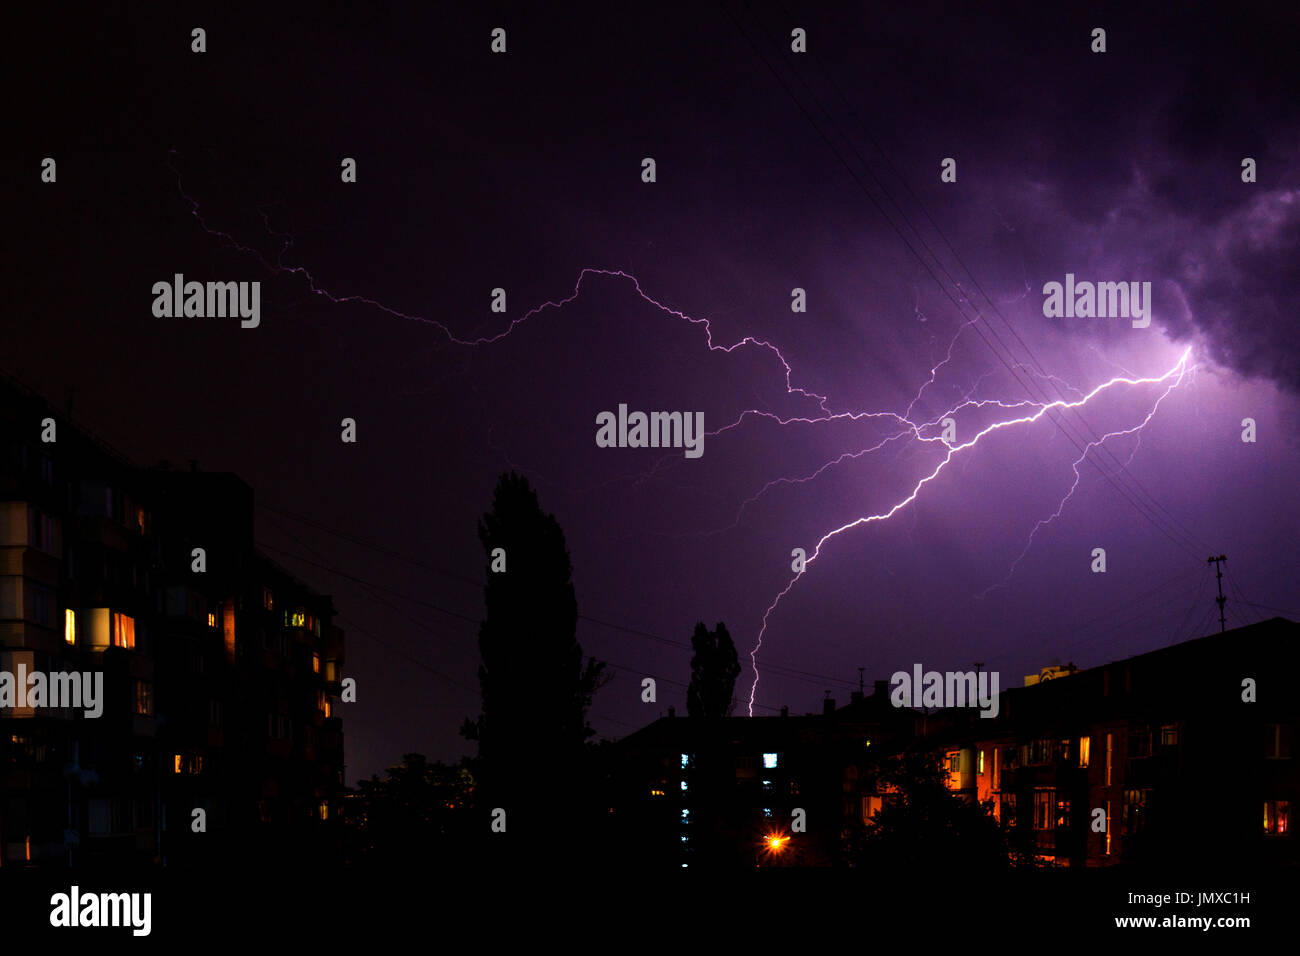 lightning over the city was broken by the sky,city - Stock Image